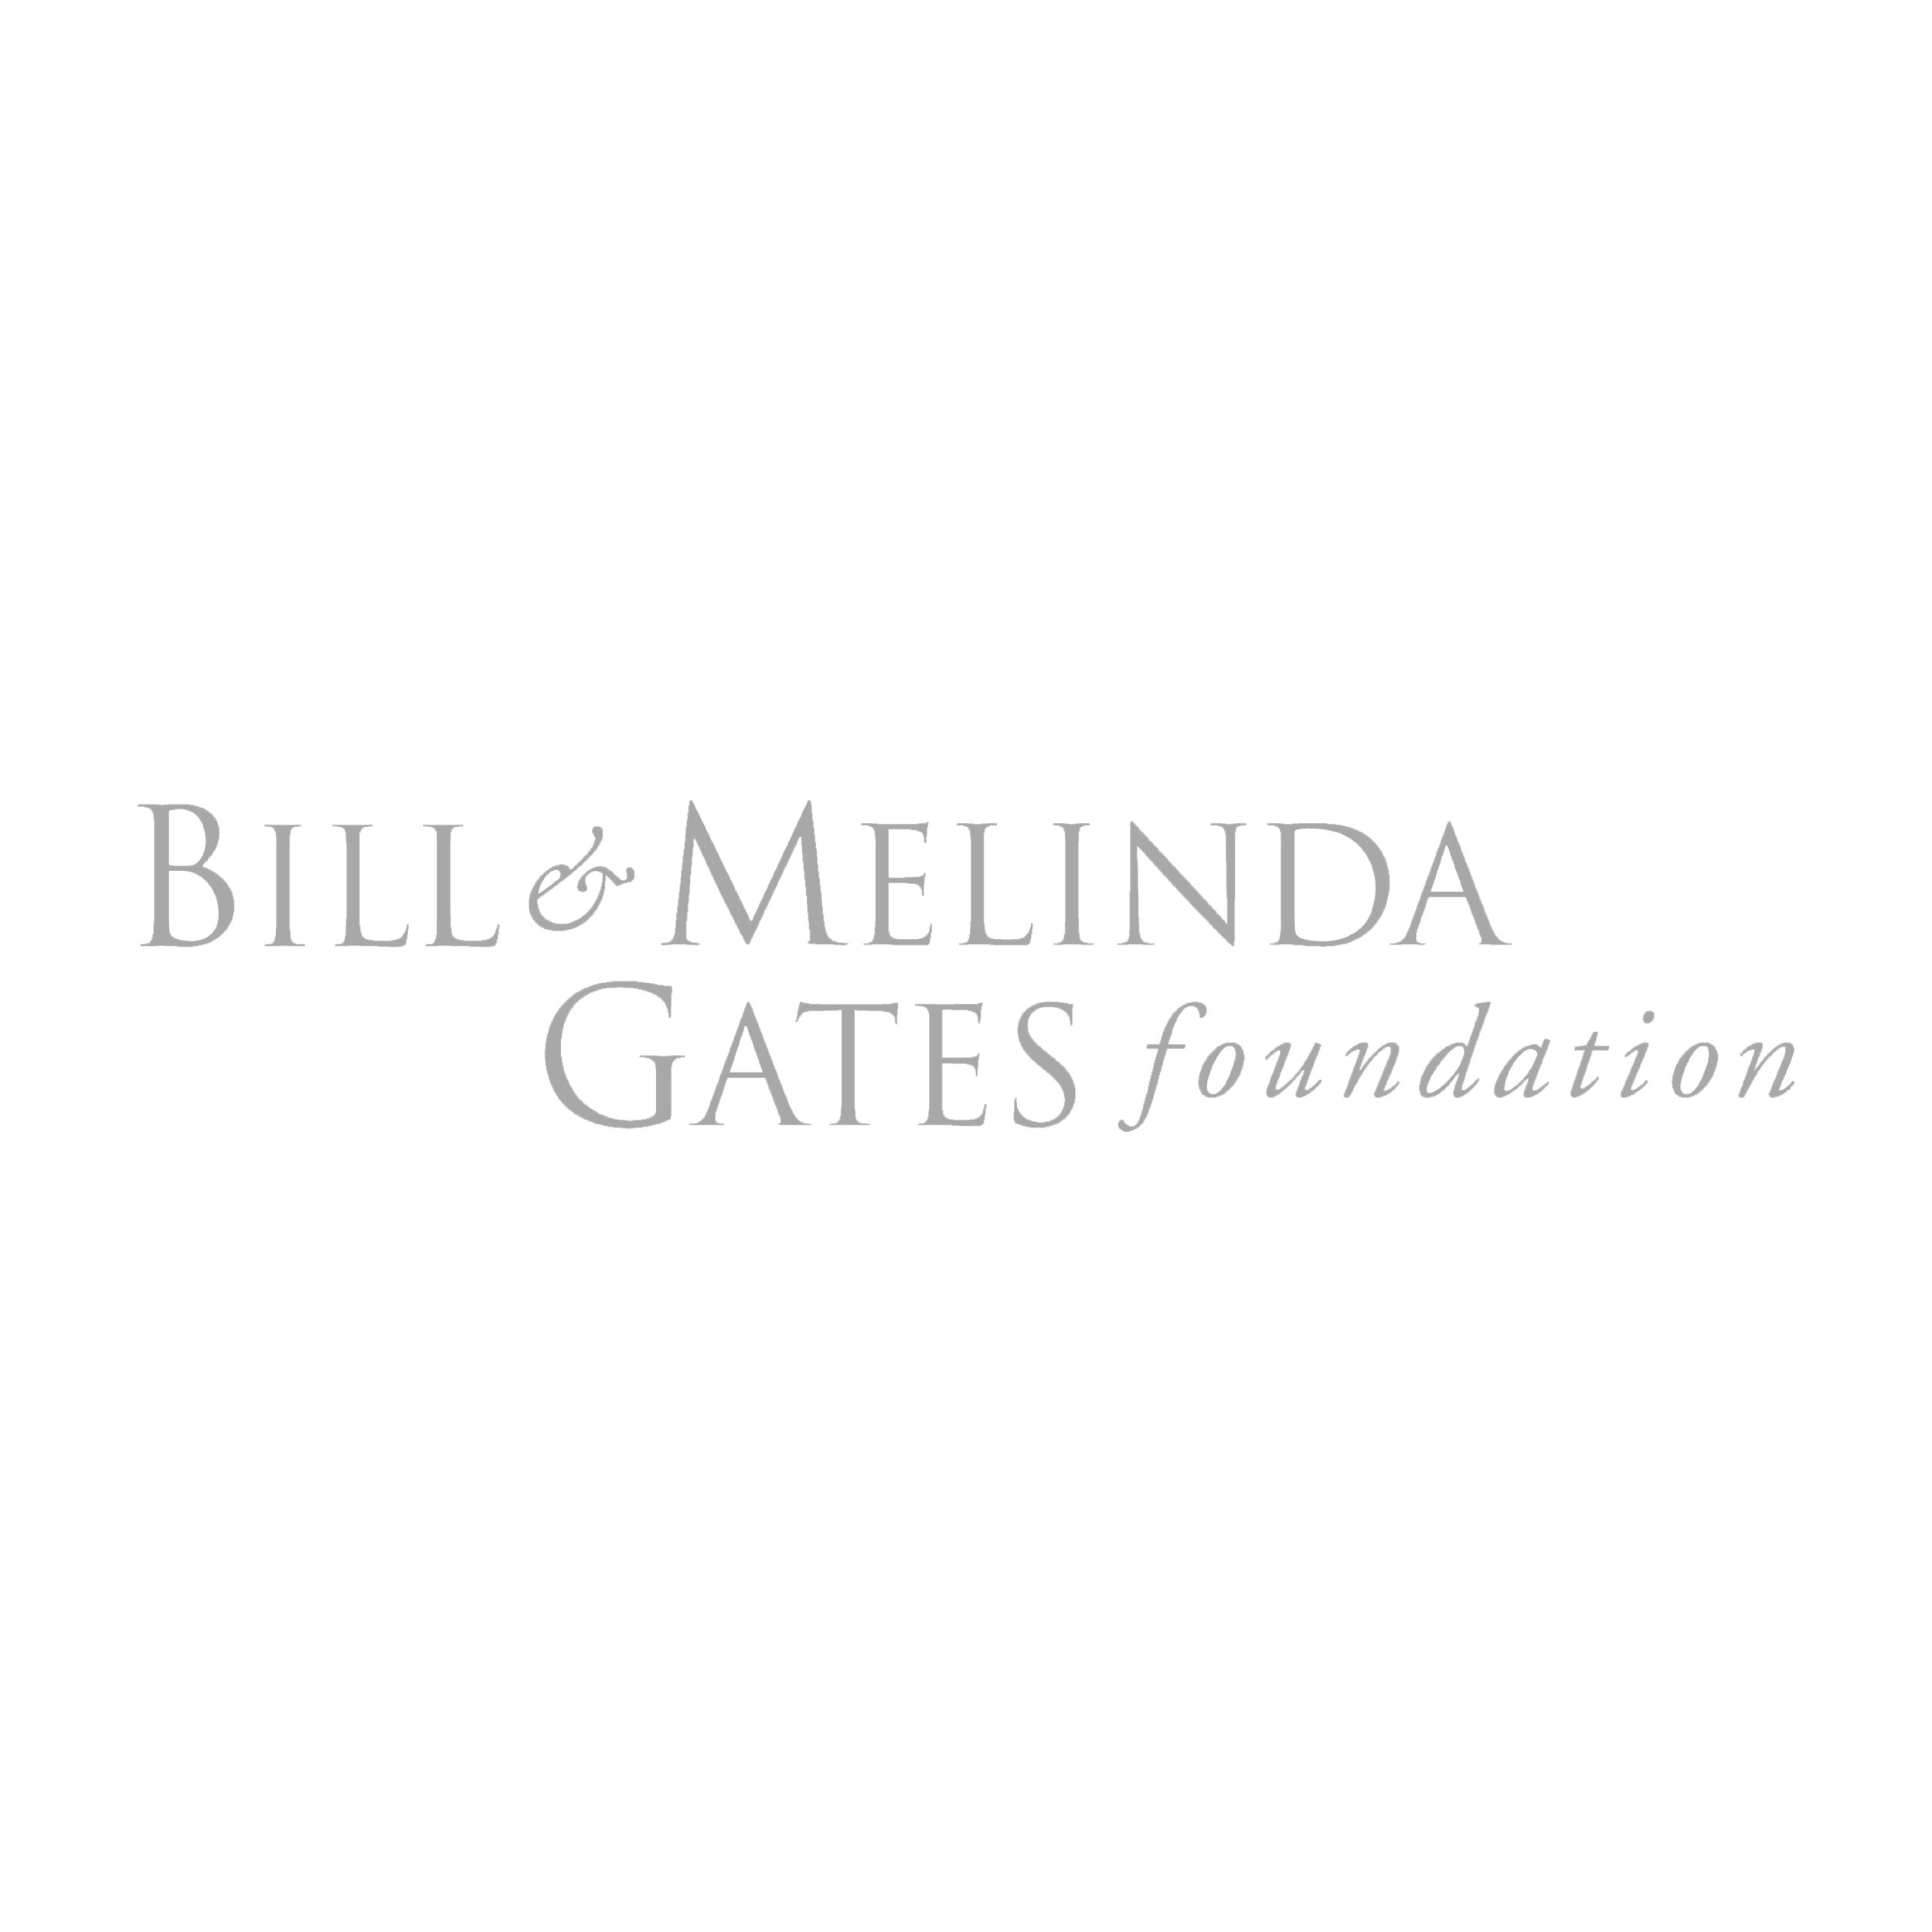 Bill & Melinda Gates Foundation-01.jpg